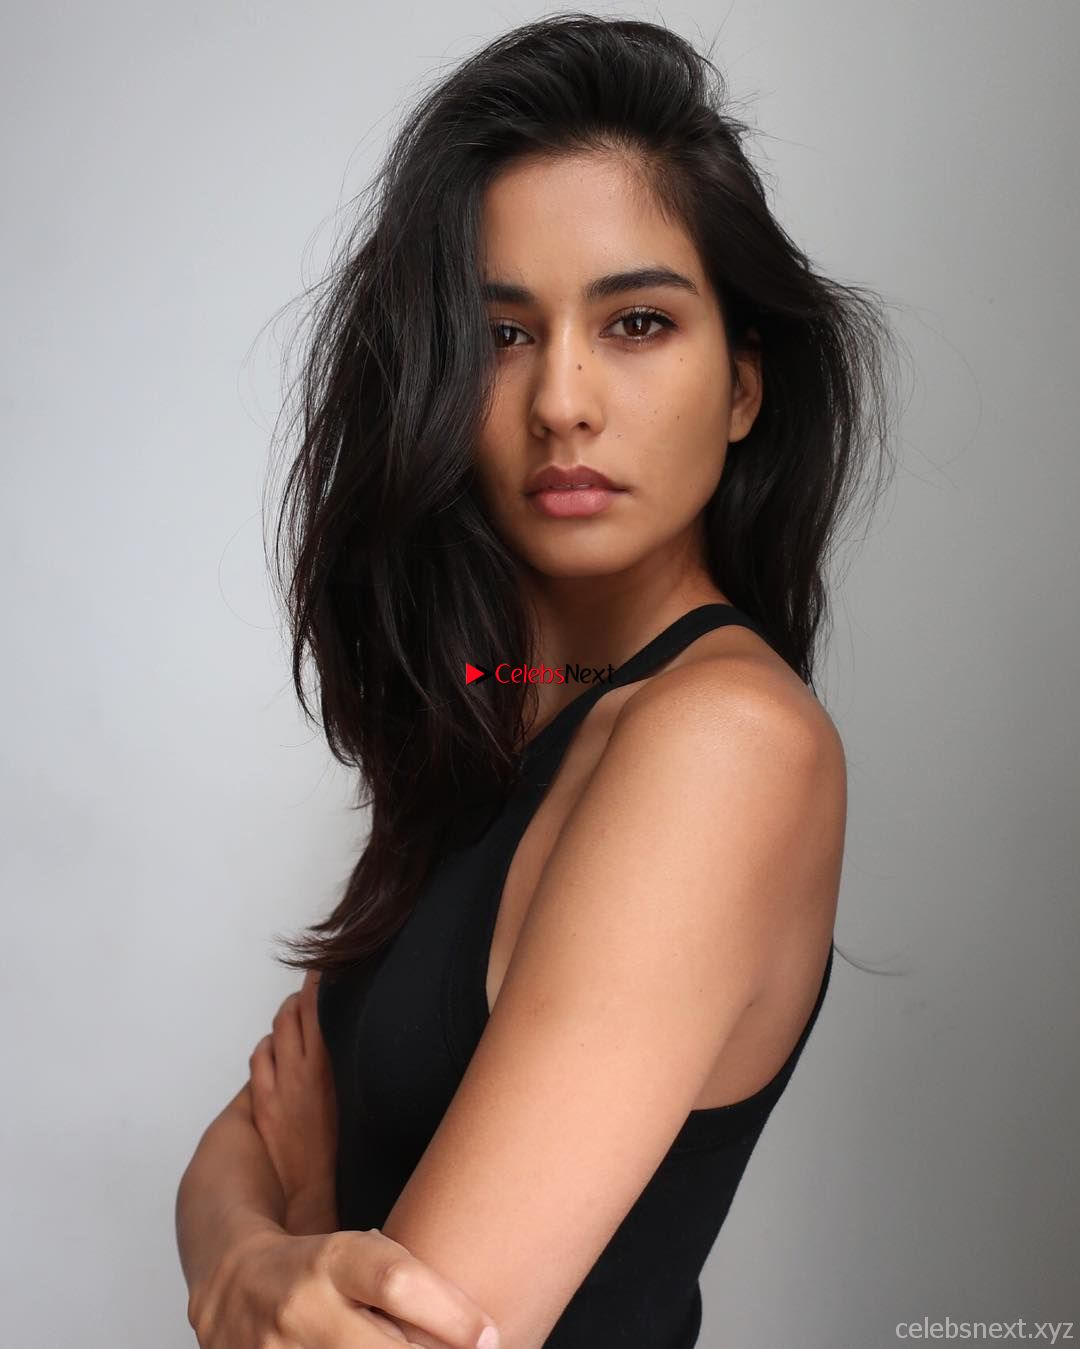 Ashika Pratt March 2018 Stunning Model Spicy Pics in Bikini Must see ~ CelebsNext Exclusive Gallery